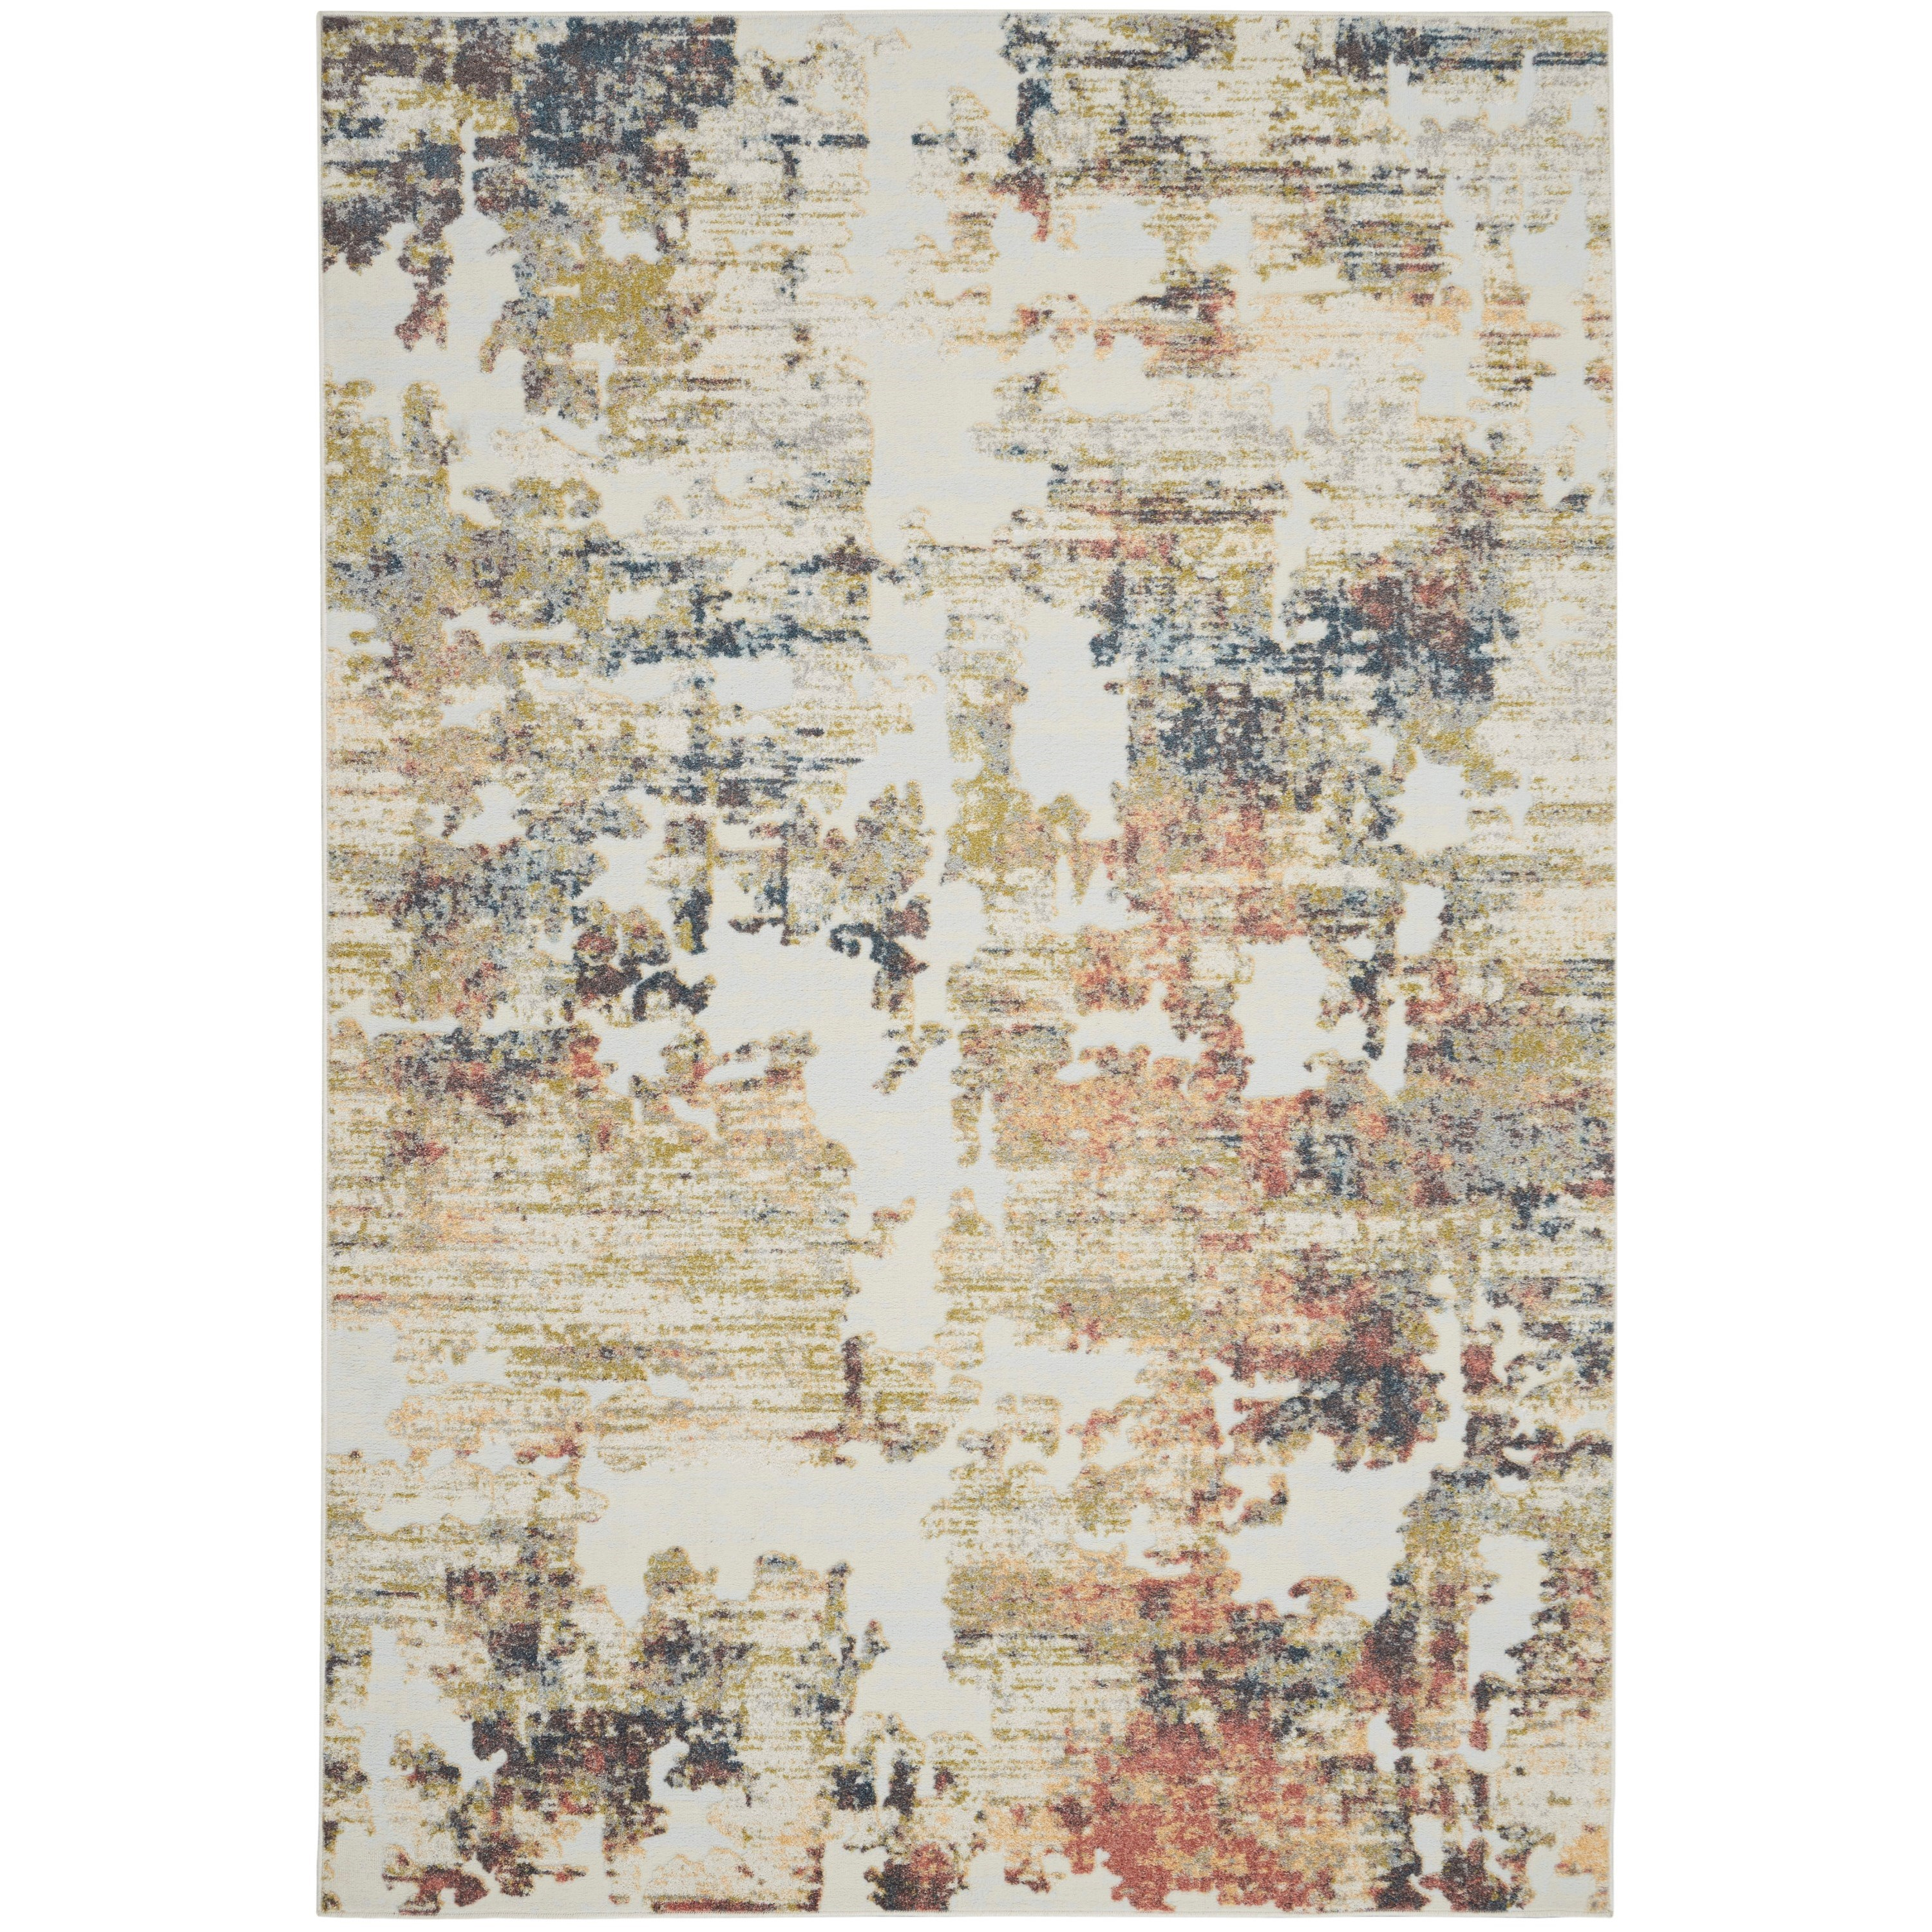 Trance 2020 7' x 10' Rug by Nourison at Sprintz Furniture